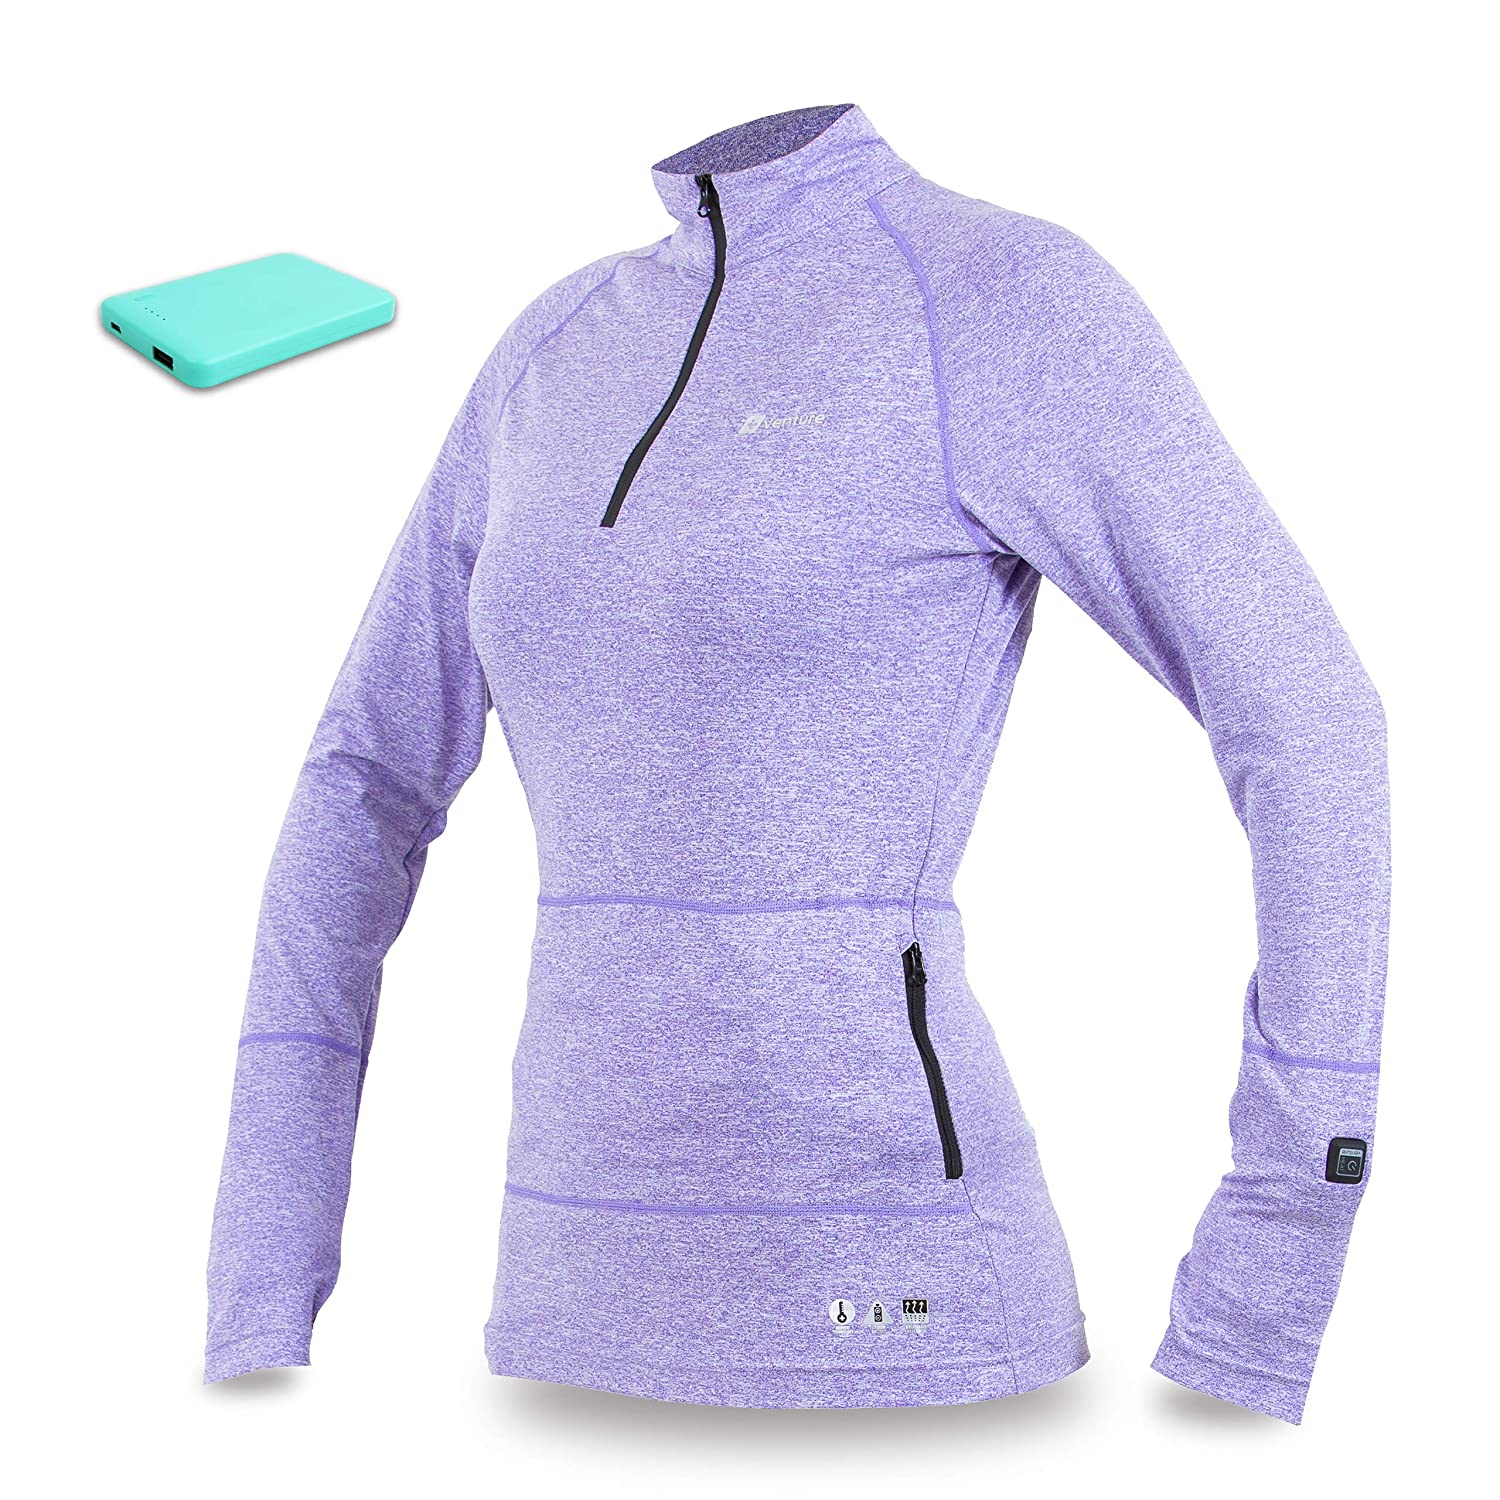 Venture Heat Women's Heated Base Layer with Battery 6Hr - The Nomad 1/4 Zip Shirt, Carbon Fiber